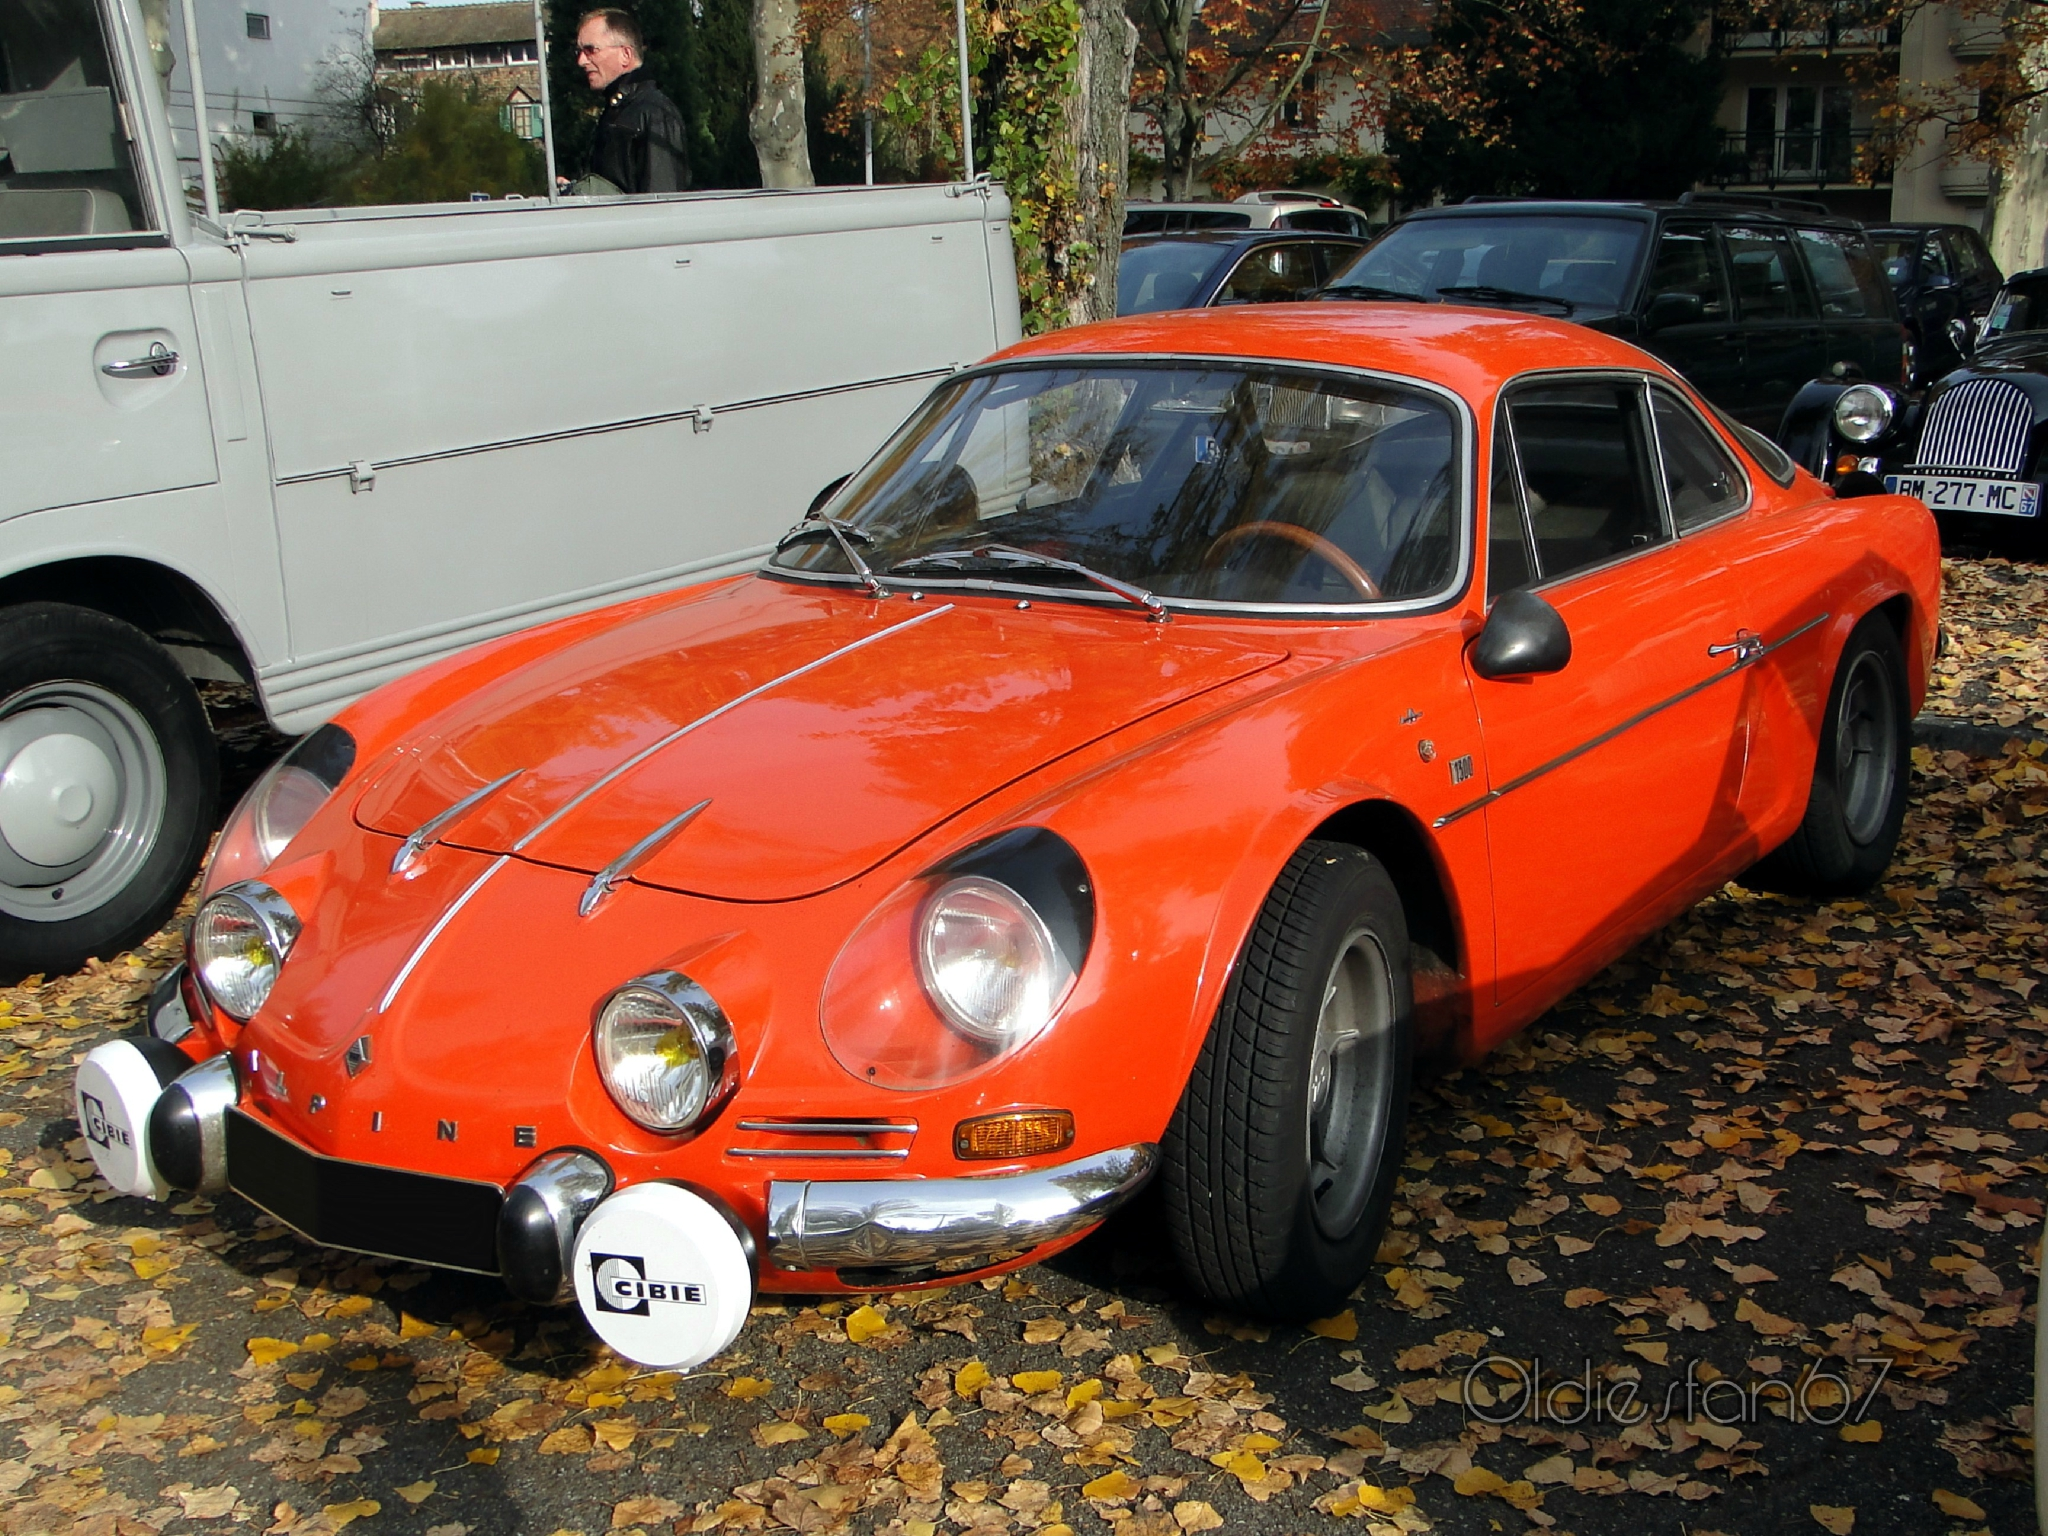 alpine renault a110 1300 1966 1971 oldiesfan67 mon blog auto. Black Bedroom Furniture Sets. Home Design Ideas